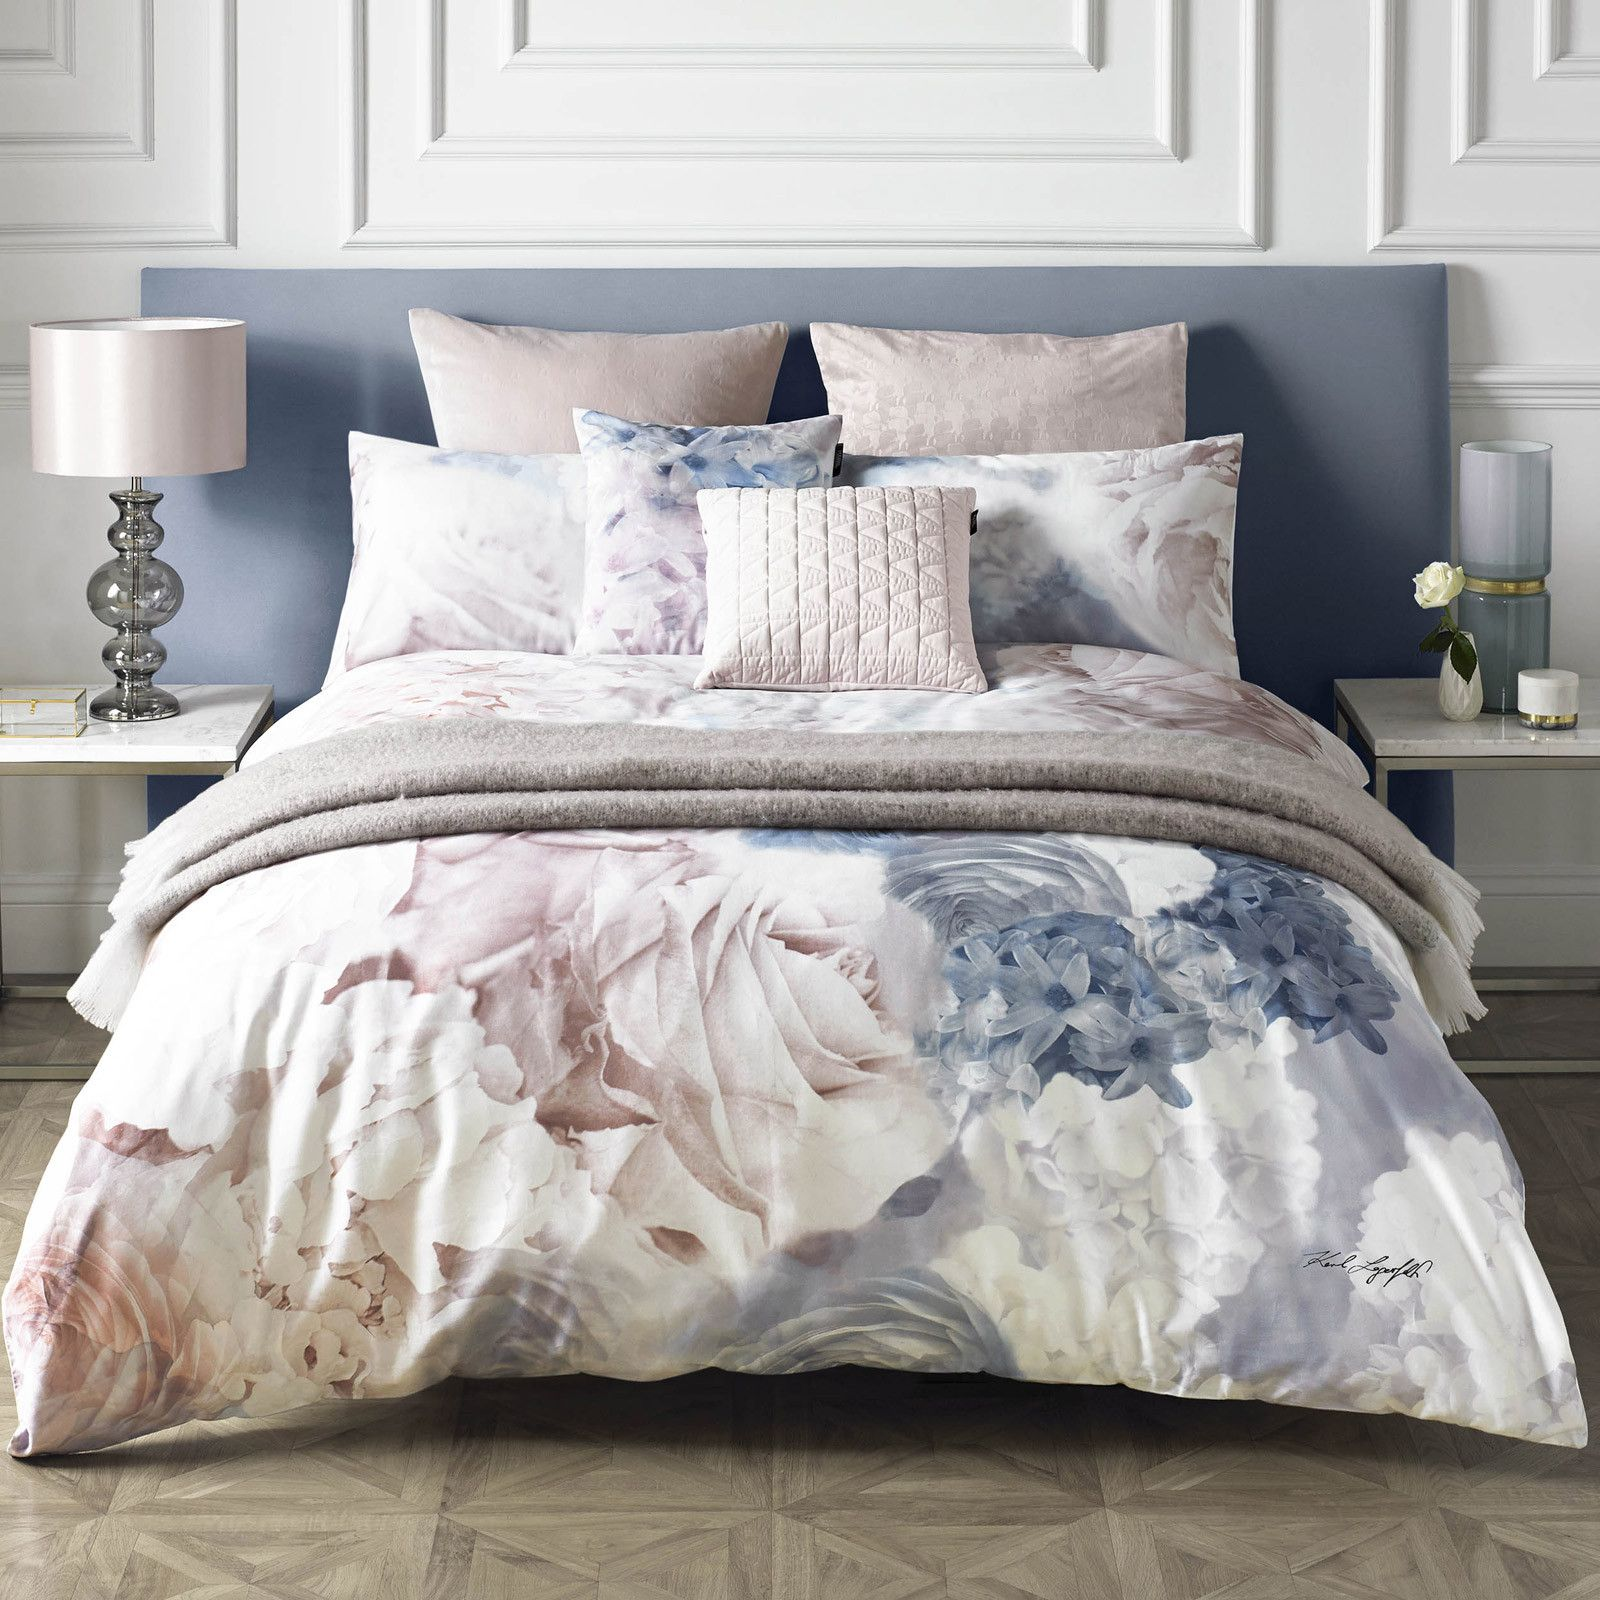 Cotton Quilt Covers King Size Karl Lagerfeld Flourish Bedding Collection Master Bedroom Refurb